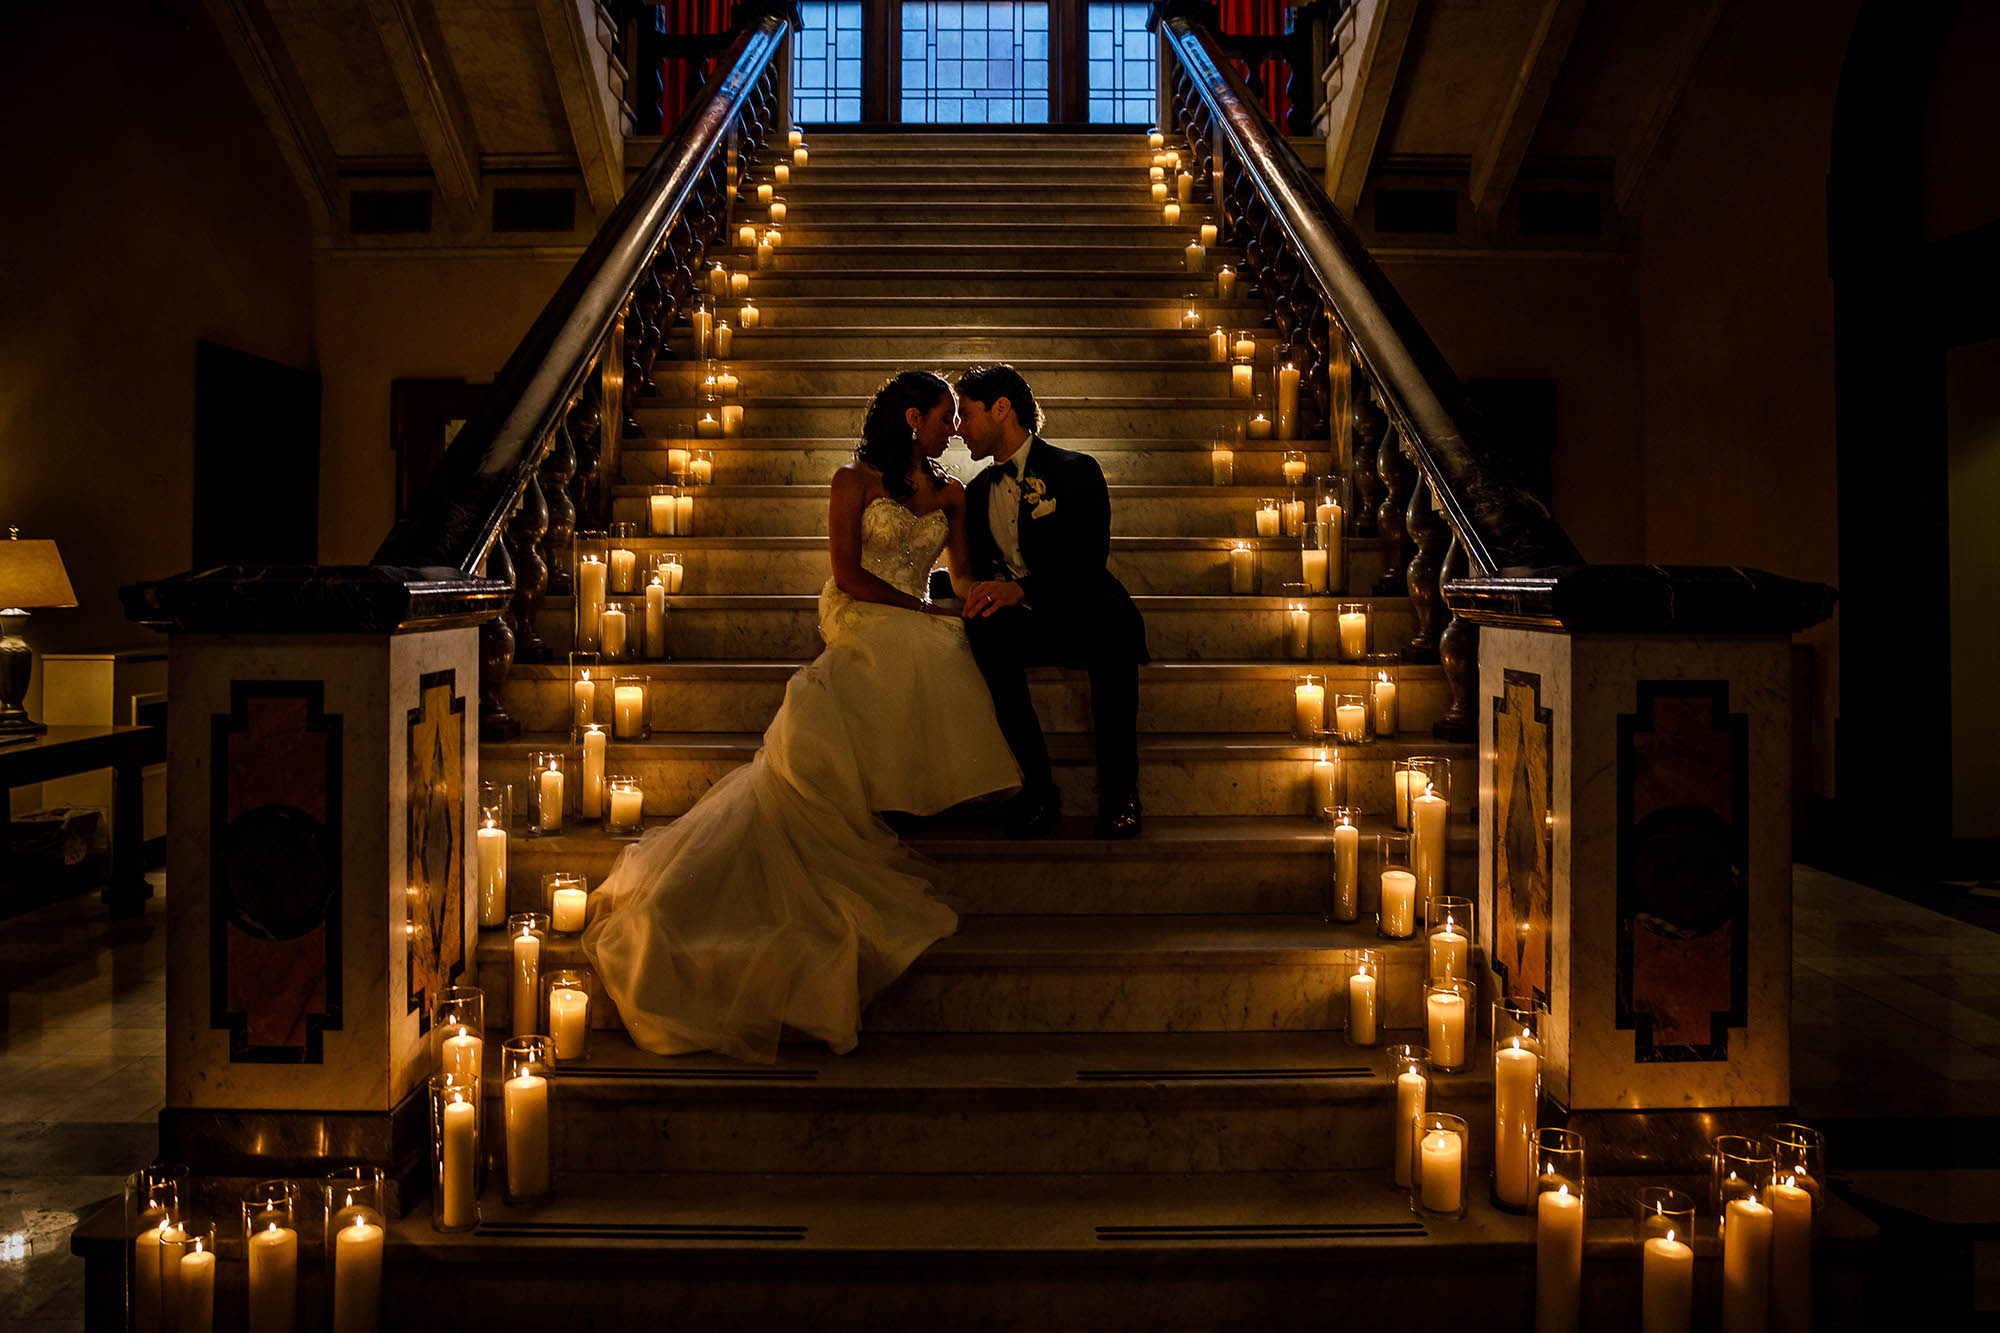 Monique and Tim sit for a romantic portrait after tying the knot on the candlelit steps of the Union Club in Downtown, Cleveland.